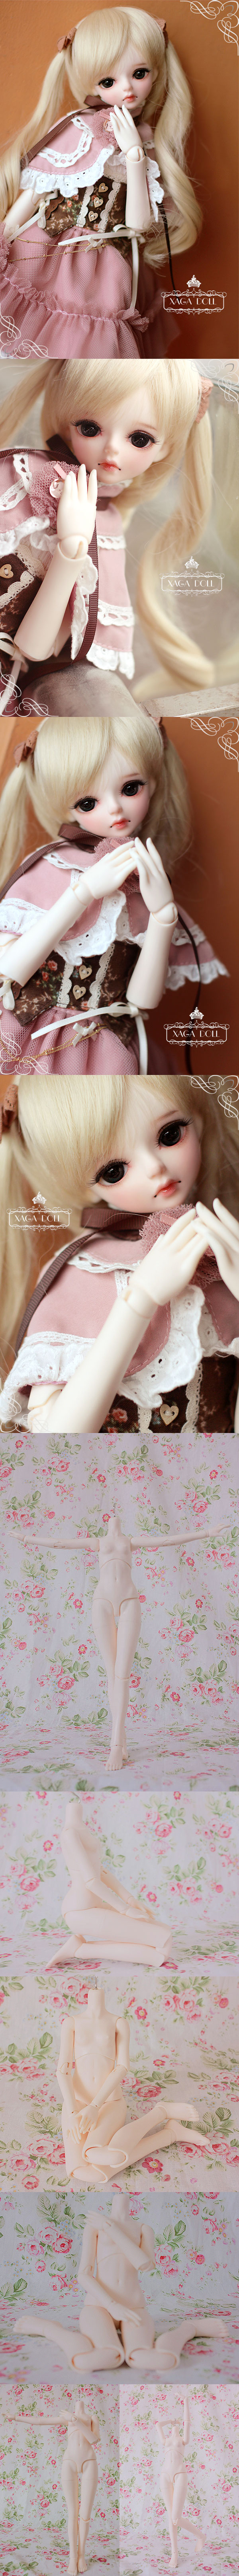 BJD aine 42.5cm Girl Ball-Jointed Doll